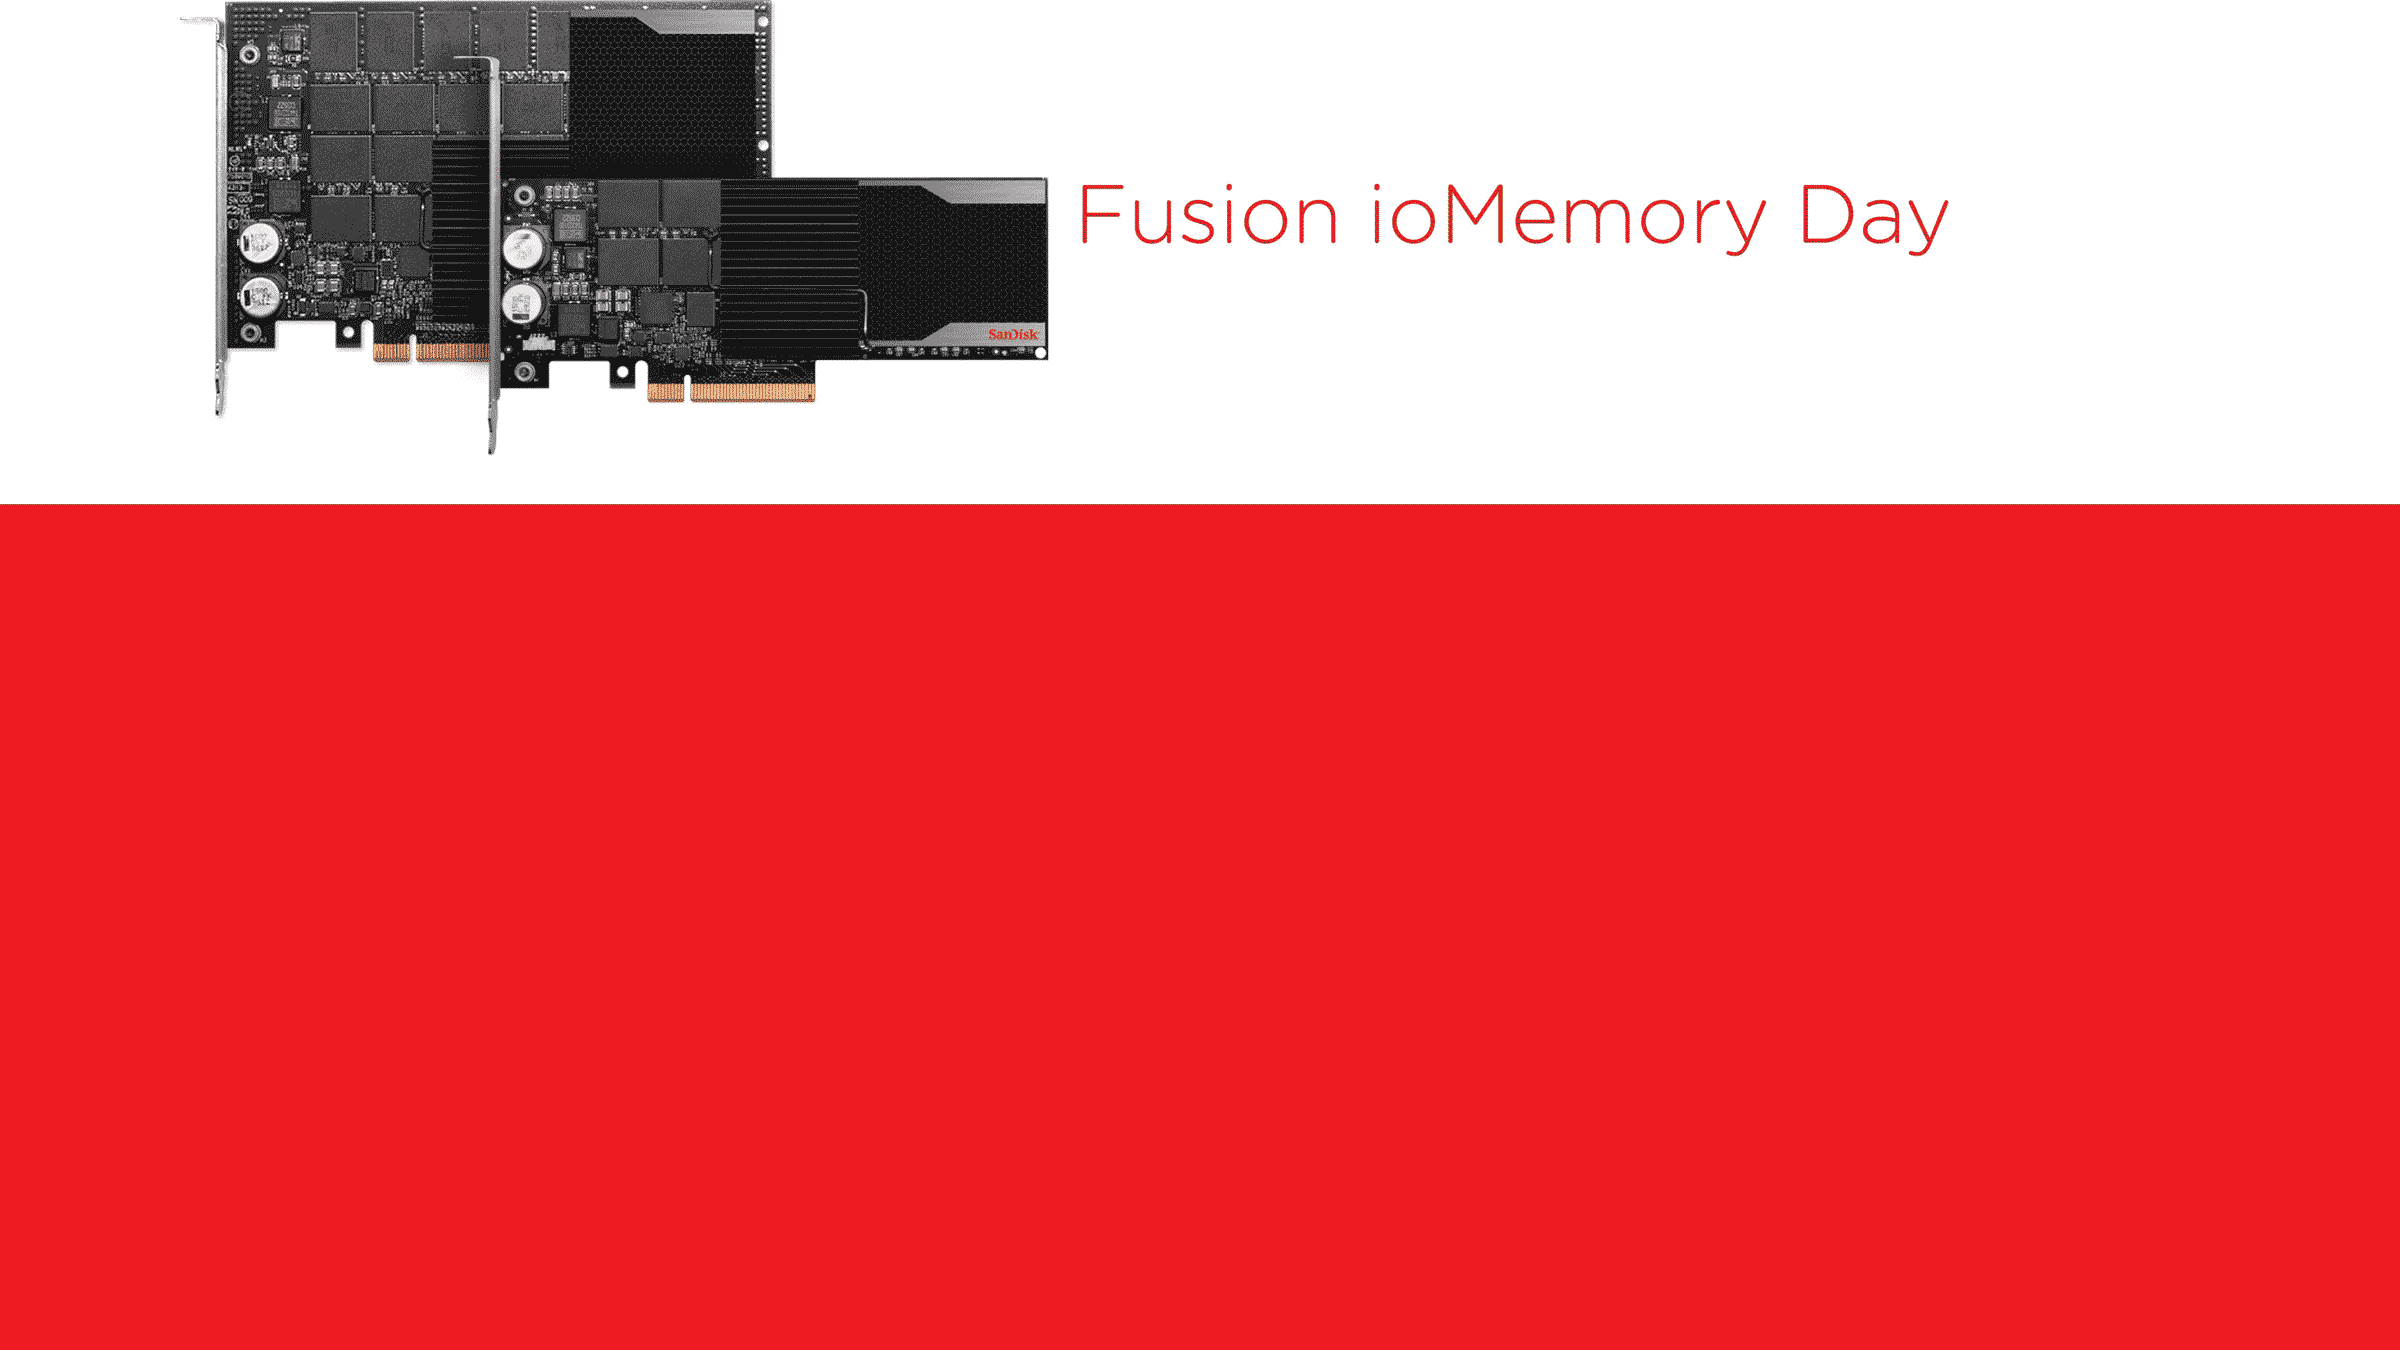 Fusion ioMemory Day